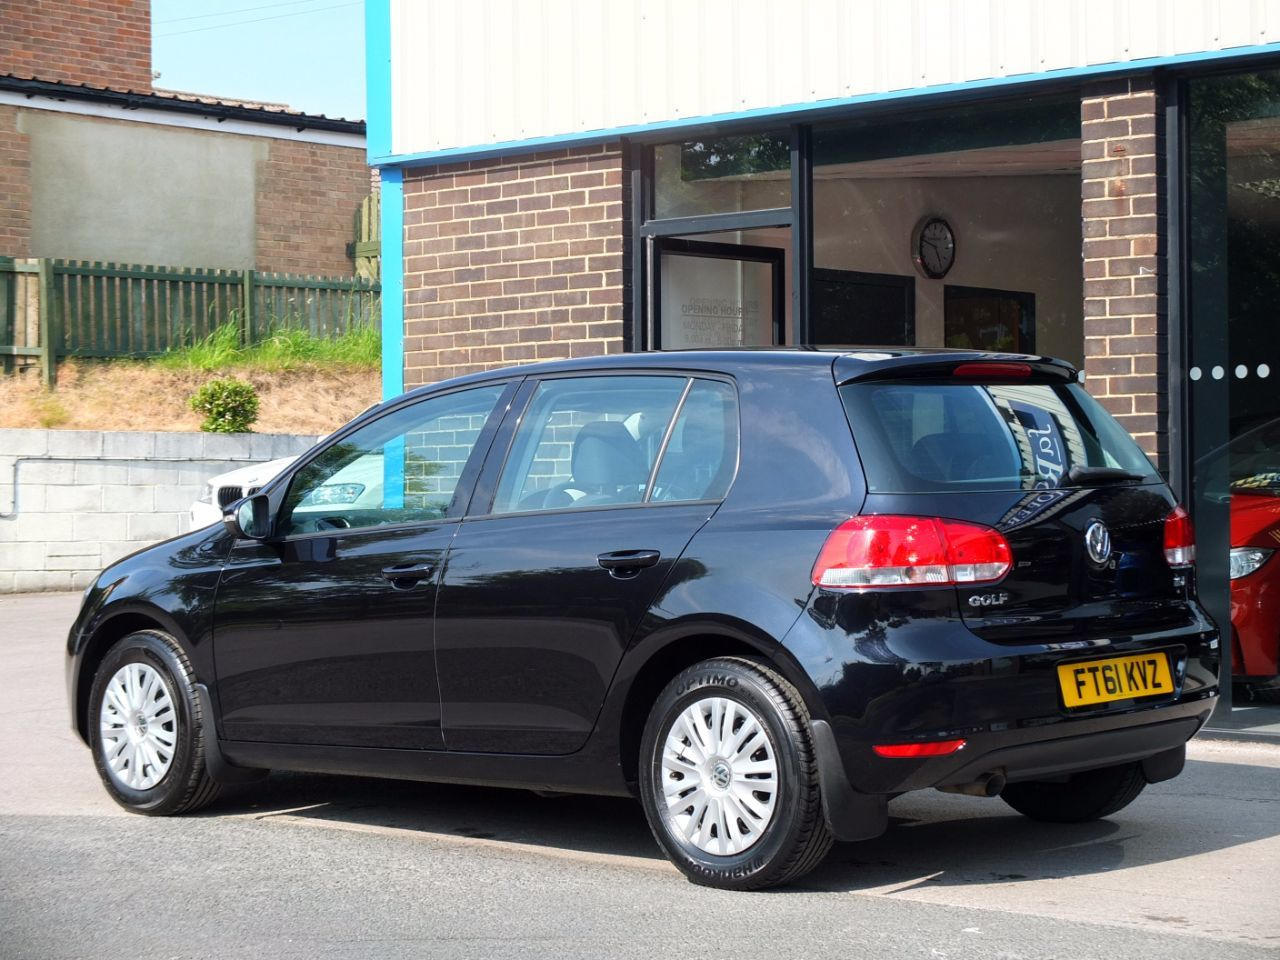 Volkswagen Golf 1.6 TDi 105 S 5 door Hatchback Diesel Deep Black Pearl